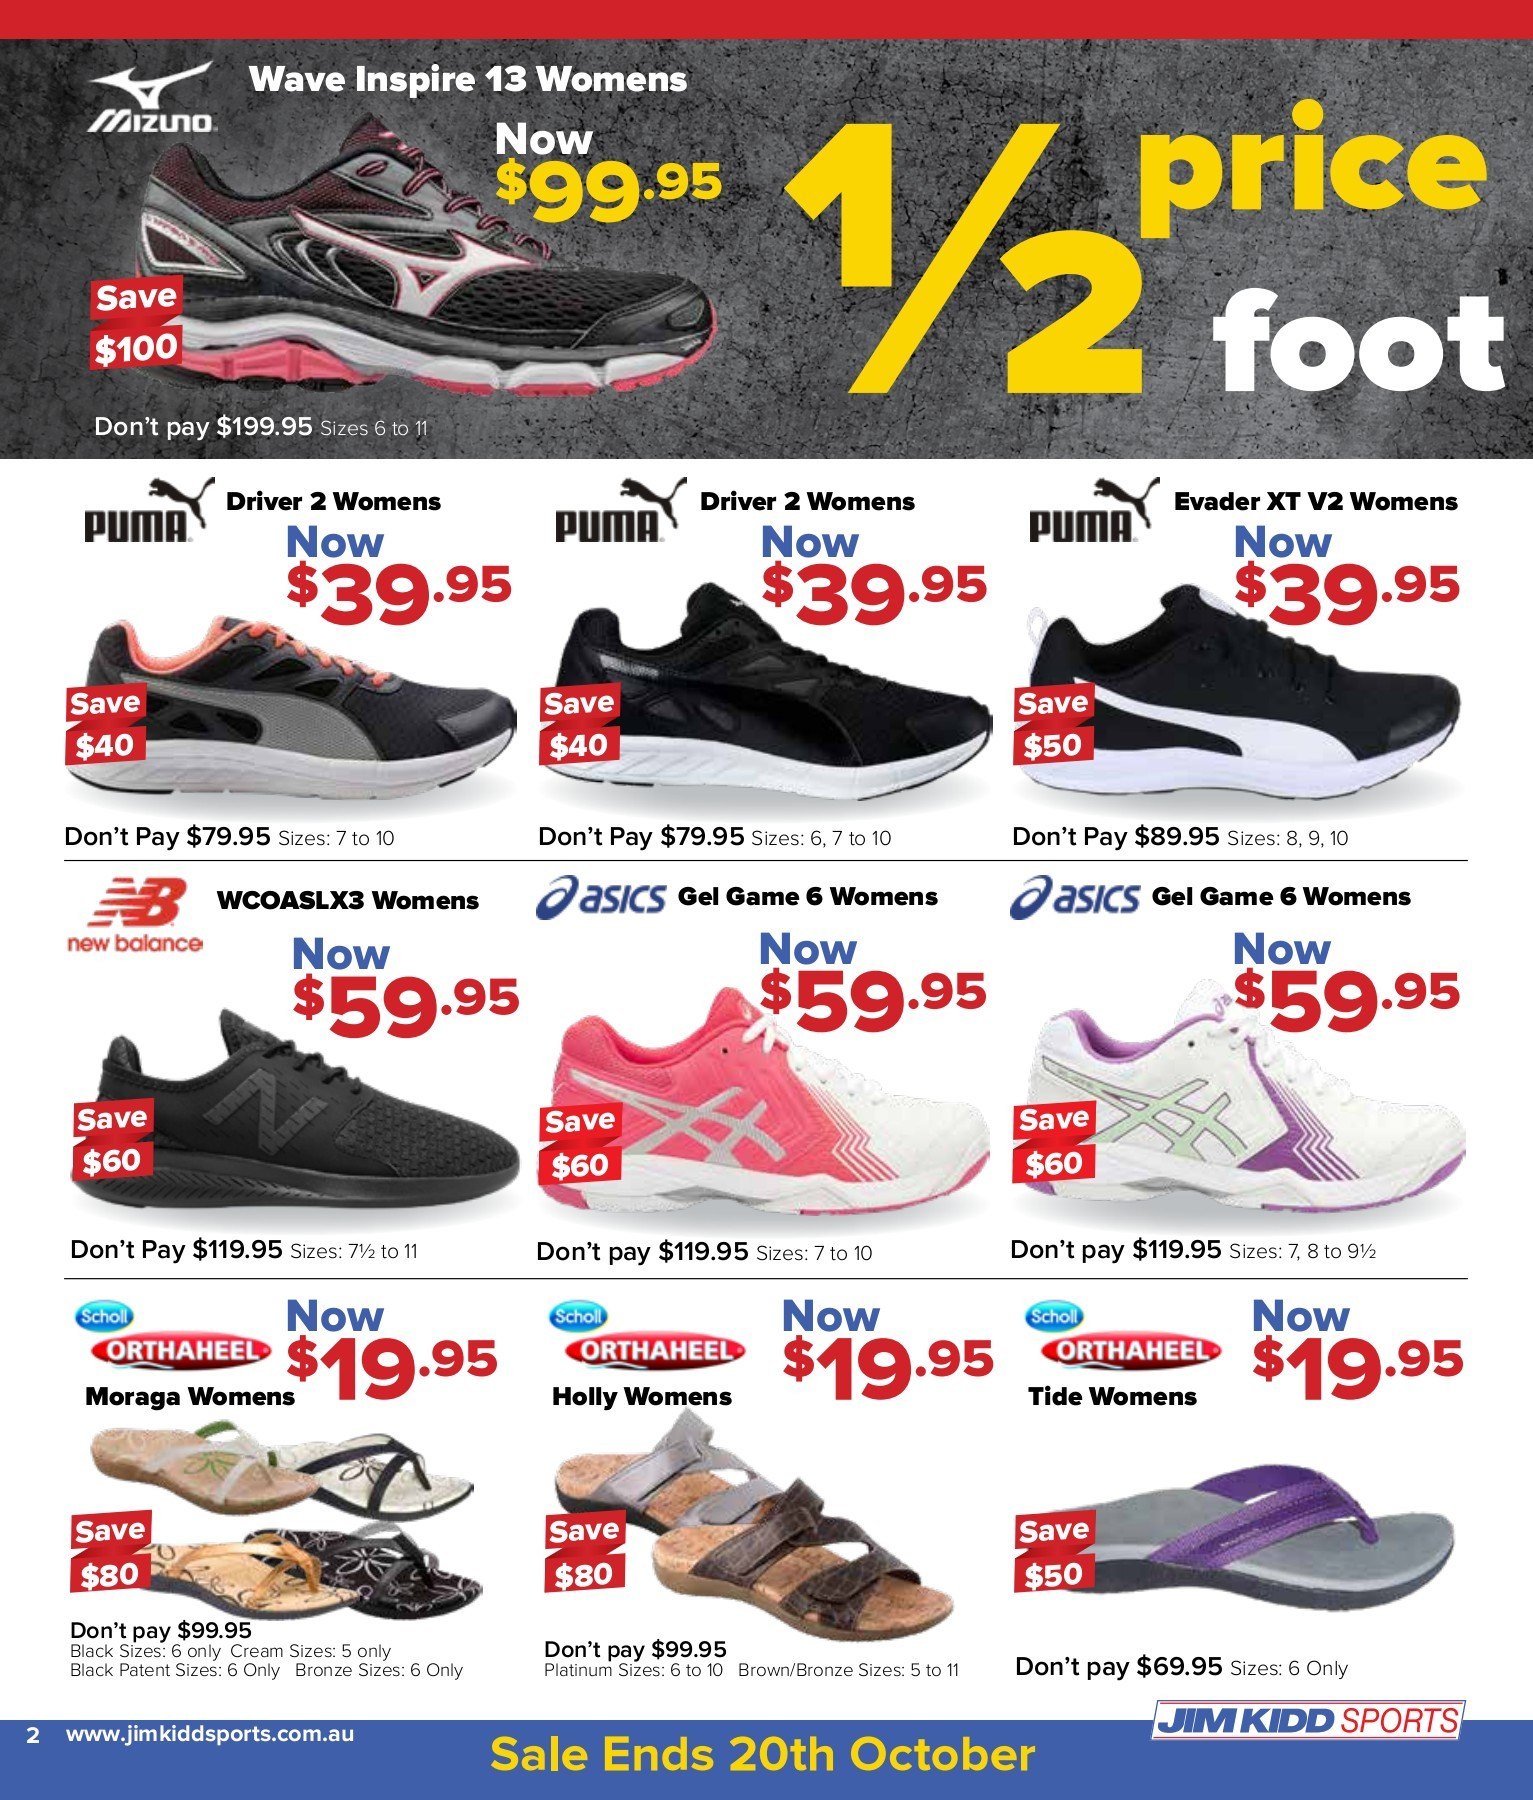 Jim Kidd Sports | Men's Running Footwear